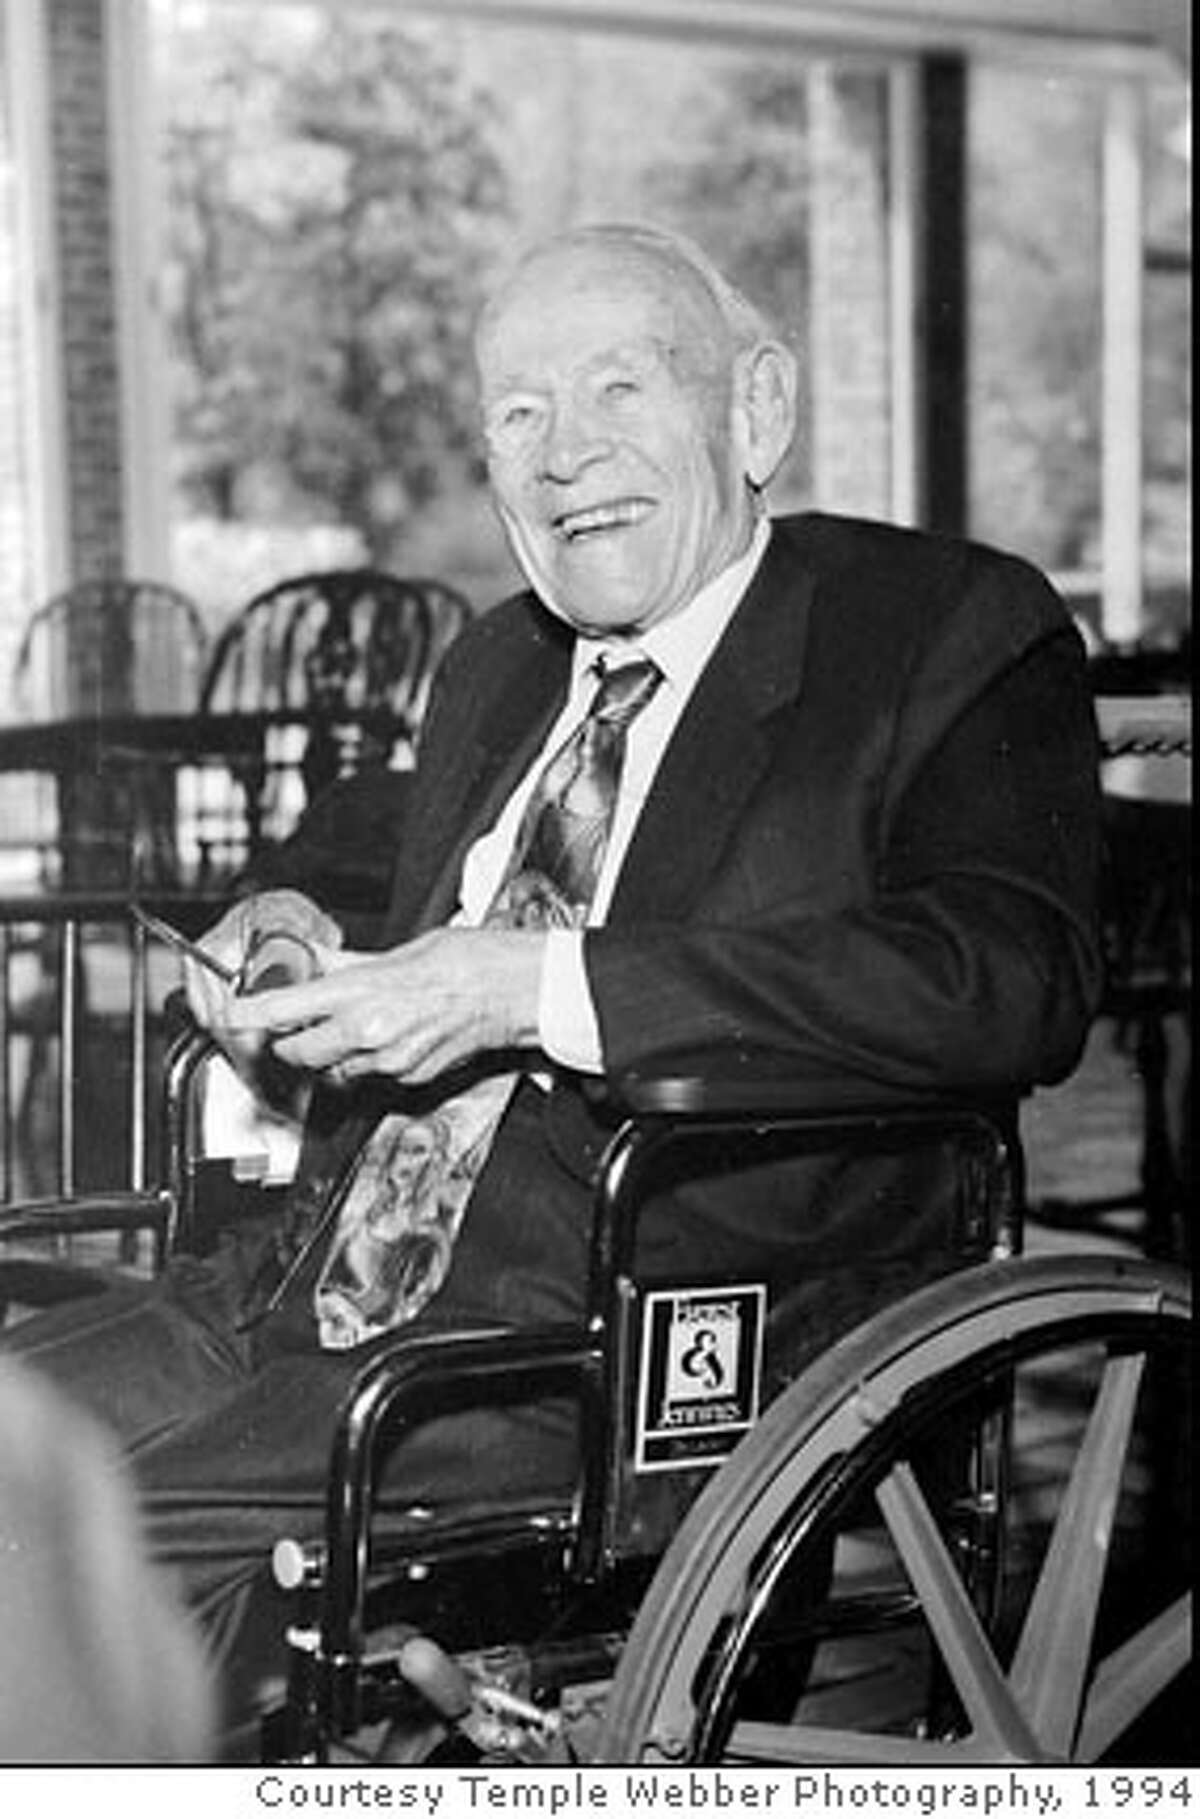 **FILE**Millionaire J. Howard Marshall II, shown in a file photo, made headlines in 1994 when he married l Anna Nichole Smith when she was 26 and he was 89. He died Aug. 5, 1995, when he was 90. A lawyer for Smith says she has died in Hollywood Fla., Thursday, Feb.8, 2007.(AP Photo/Courtesy Temple Webber Photography, from